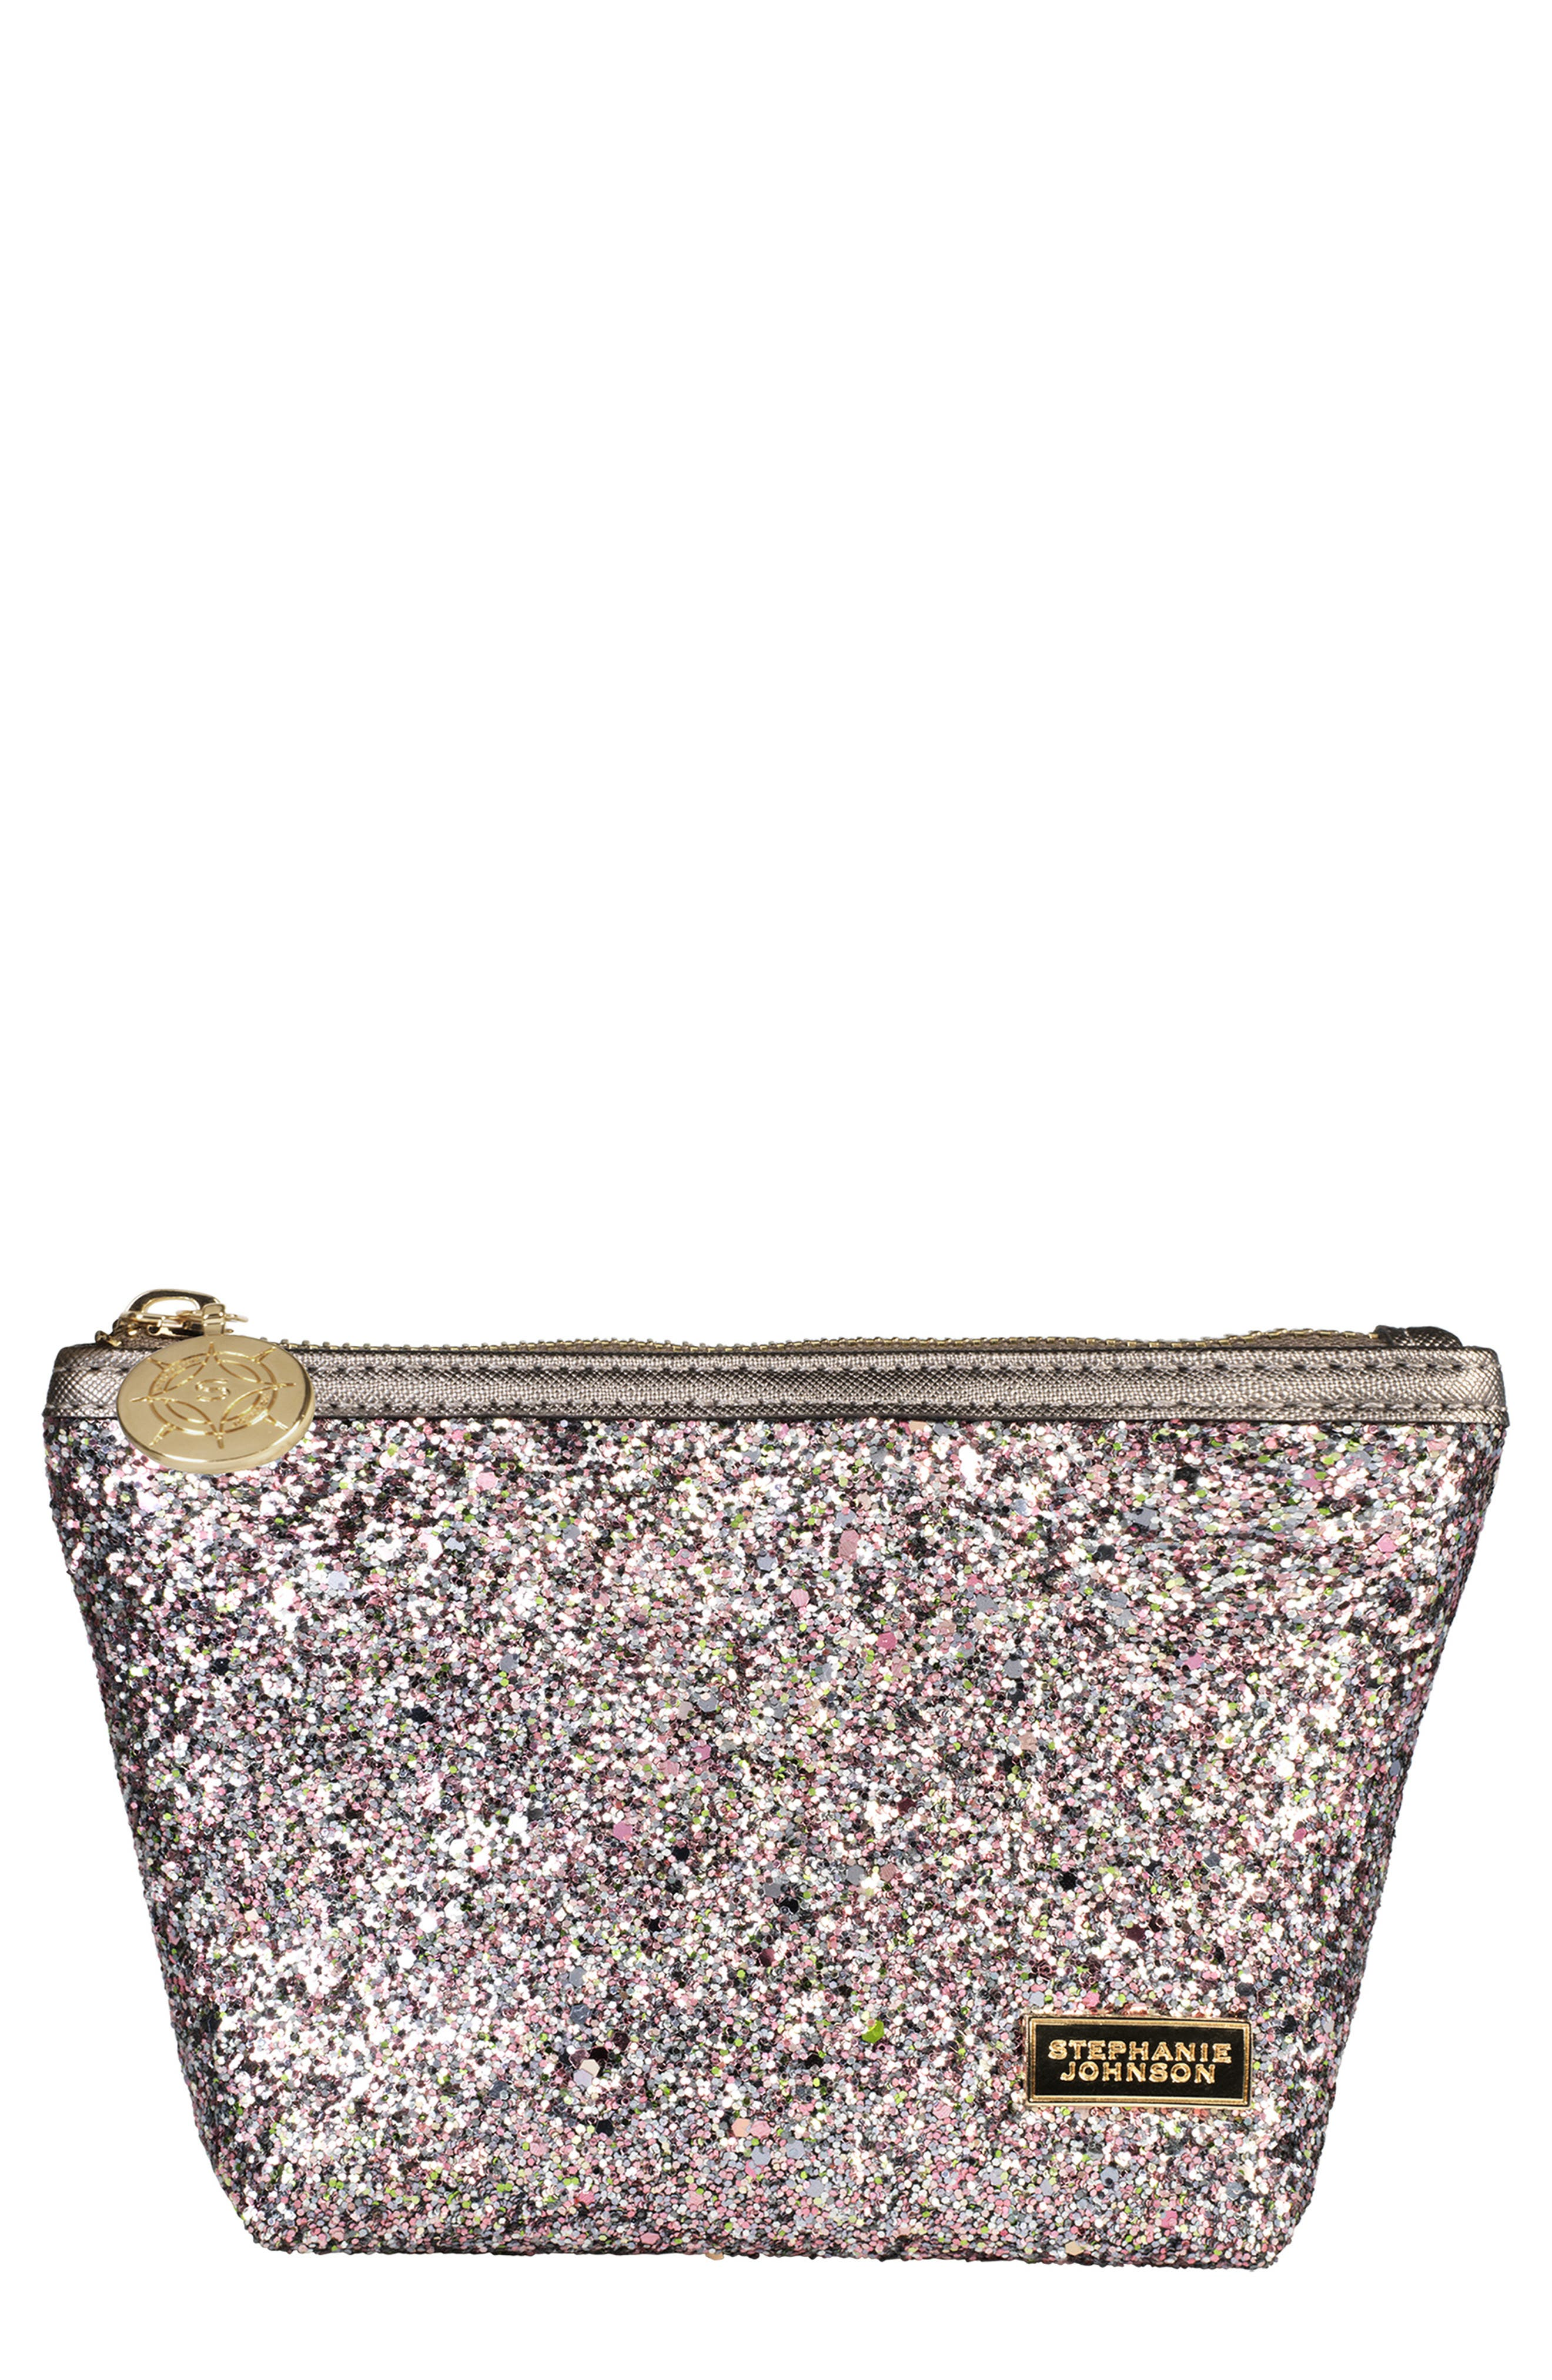 STEPHANIE JOHNSON Laura Small Trapezoid Cosmetics Case in Hollywood Pink